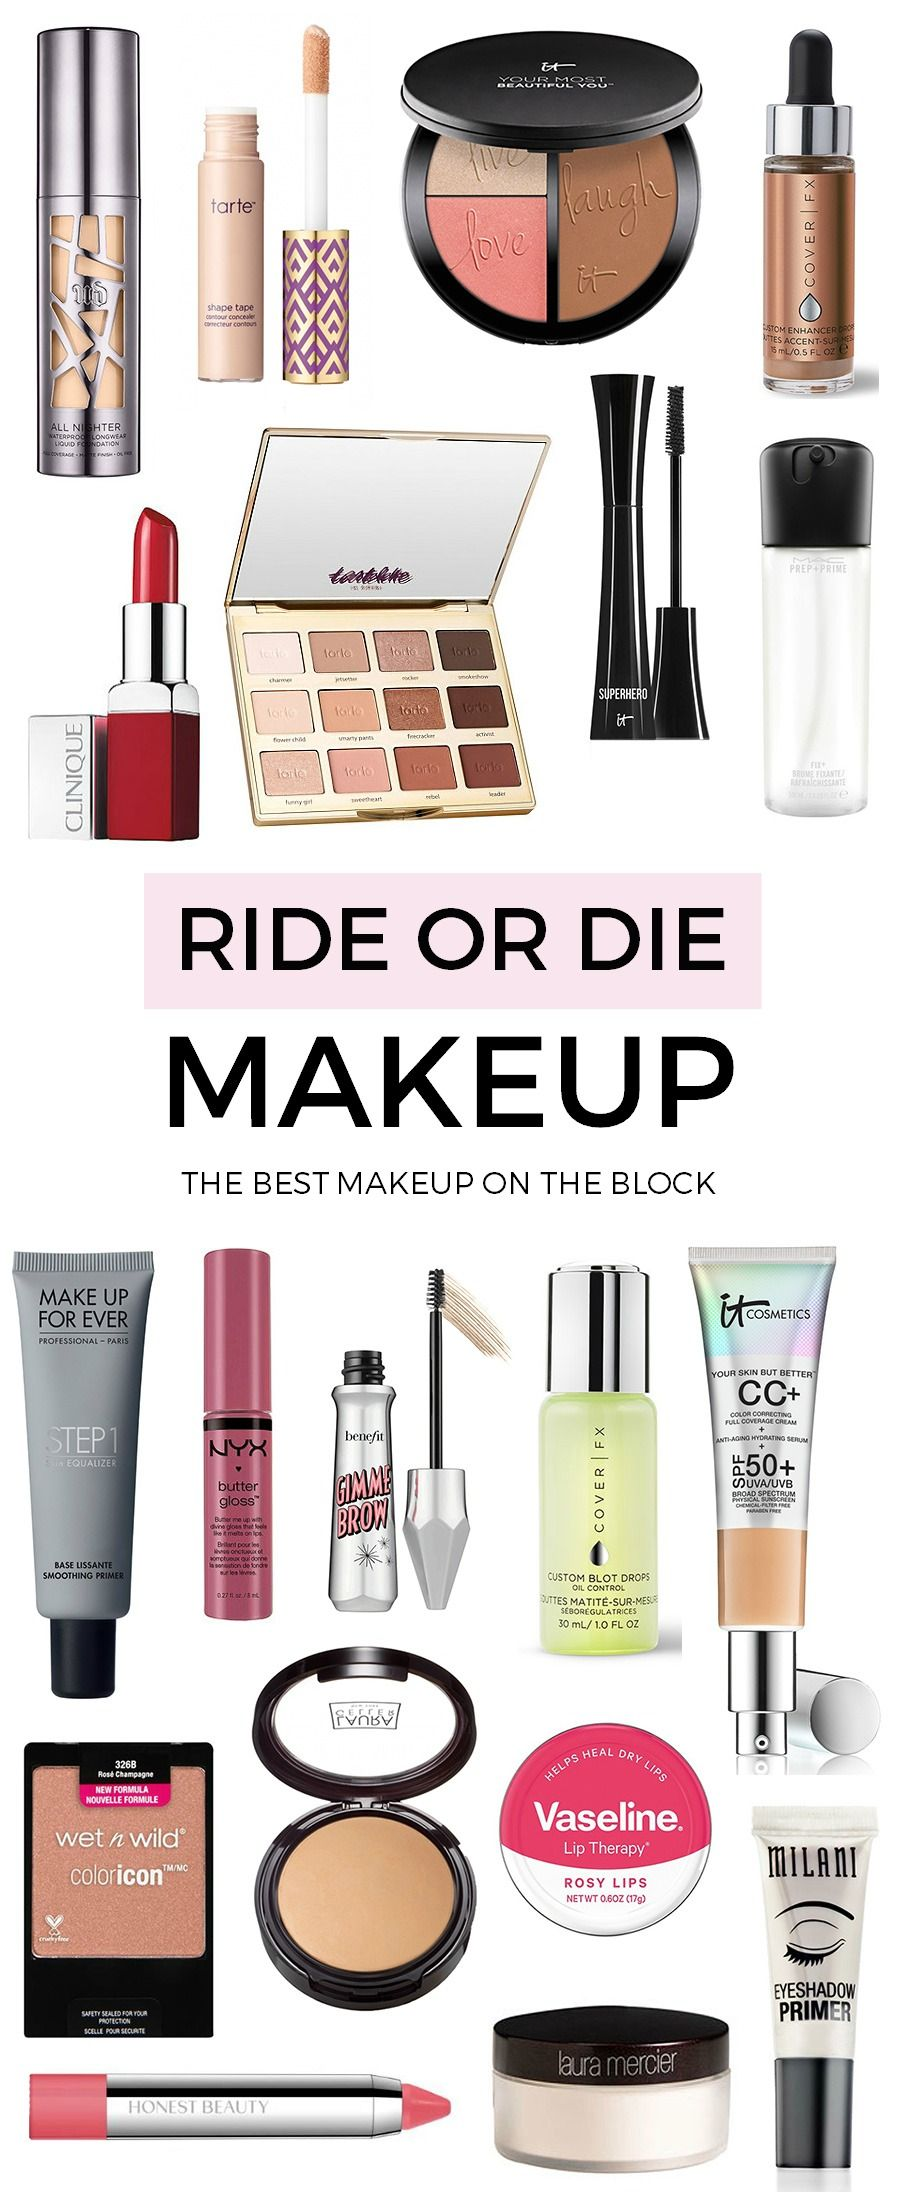 Ride or Die Makeup Kit Holy grail makeup items that are